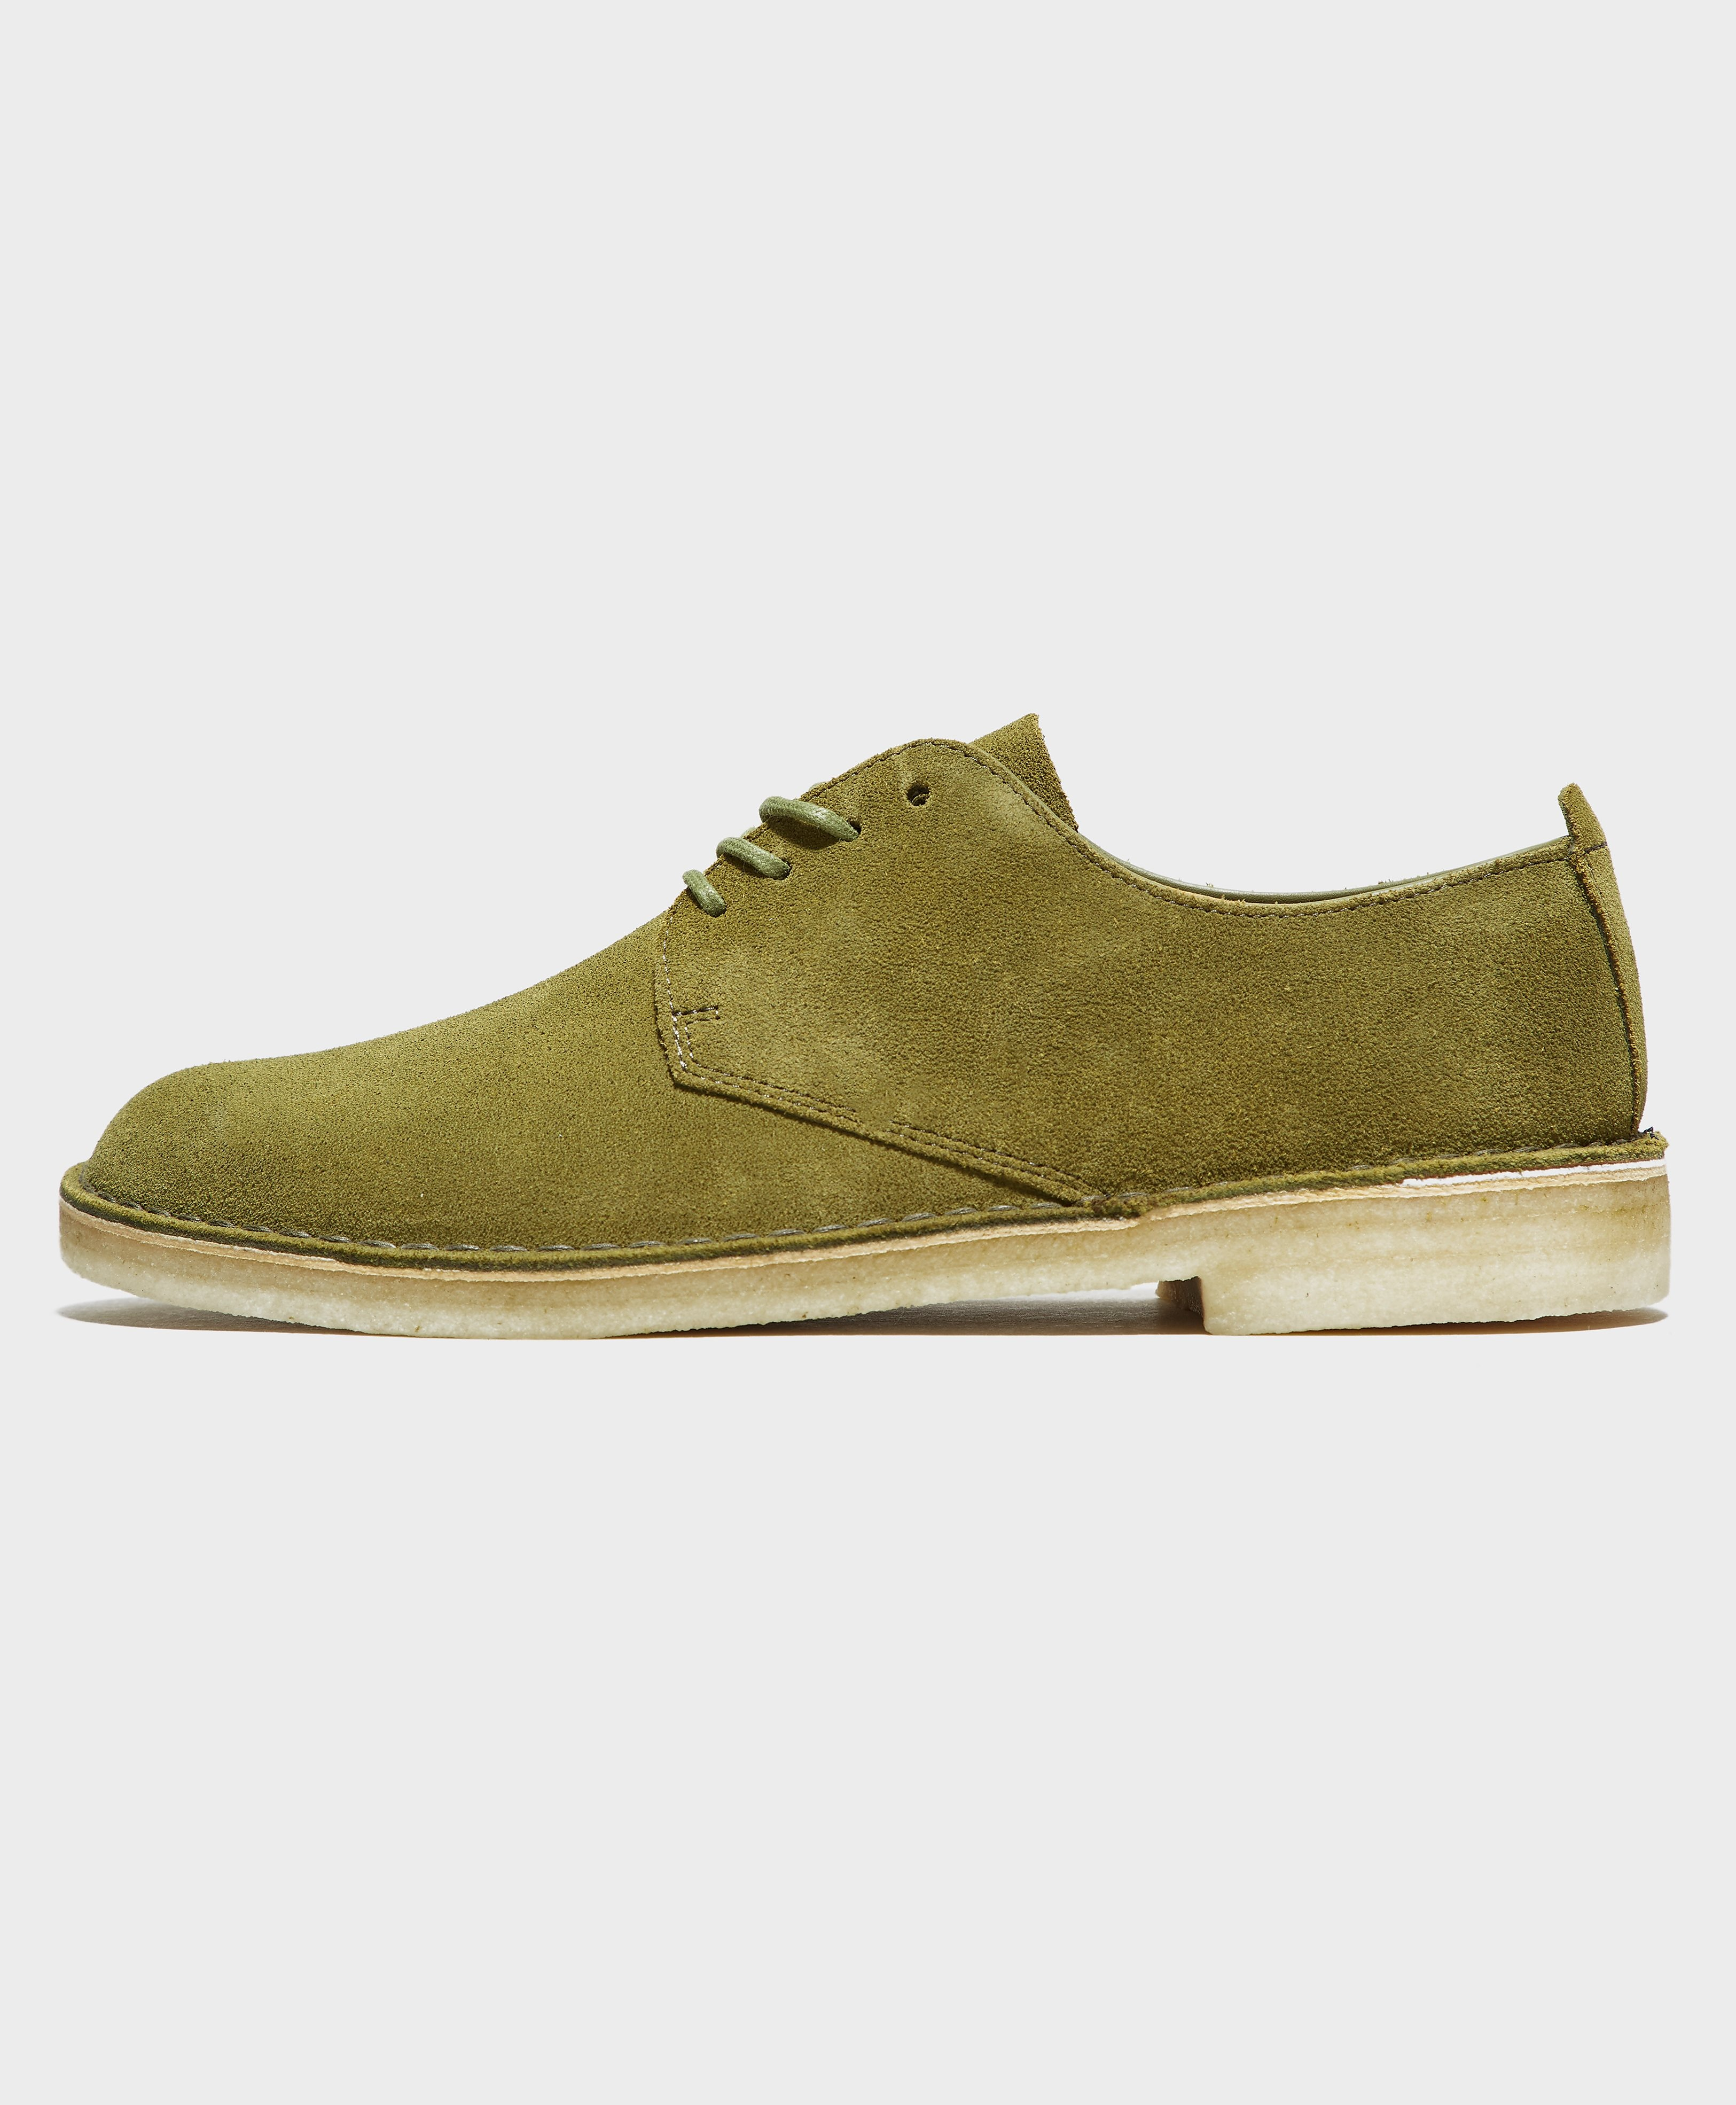 Clarks Originals Desert London Shoe